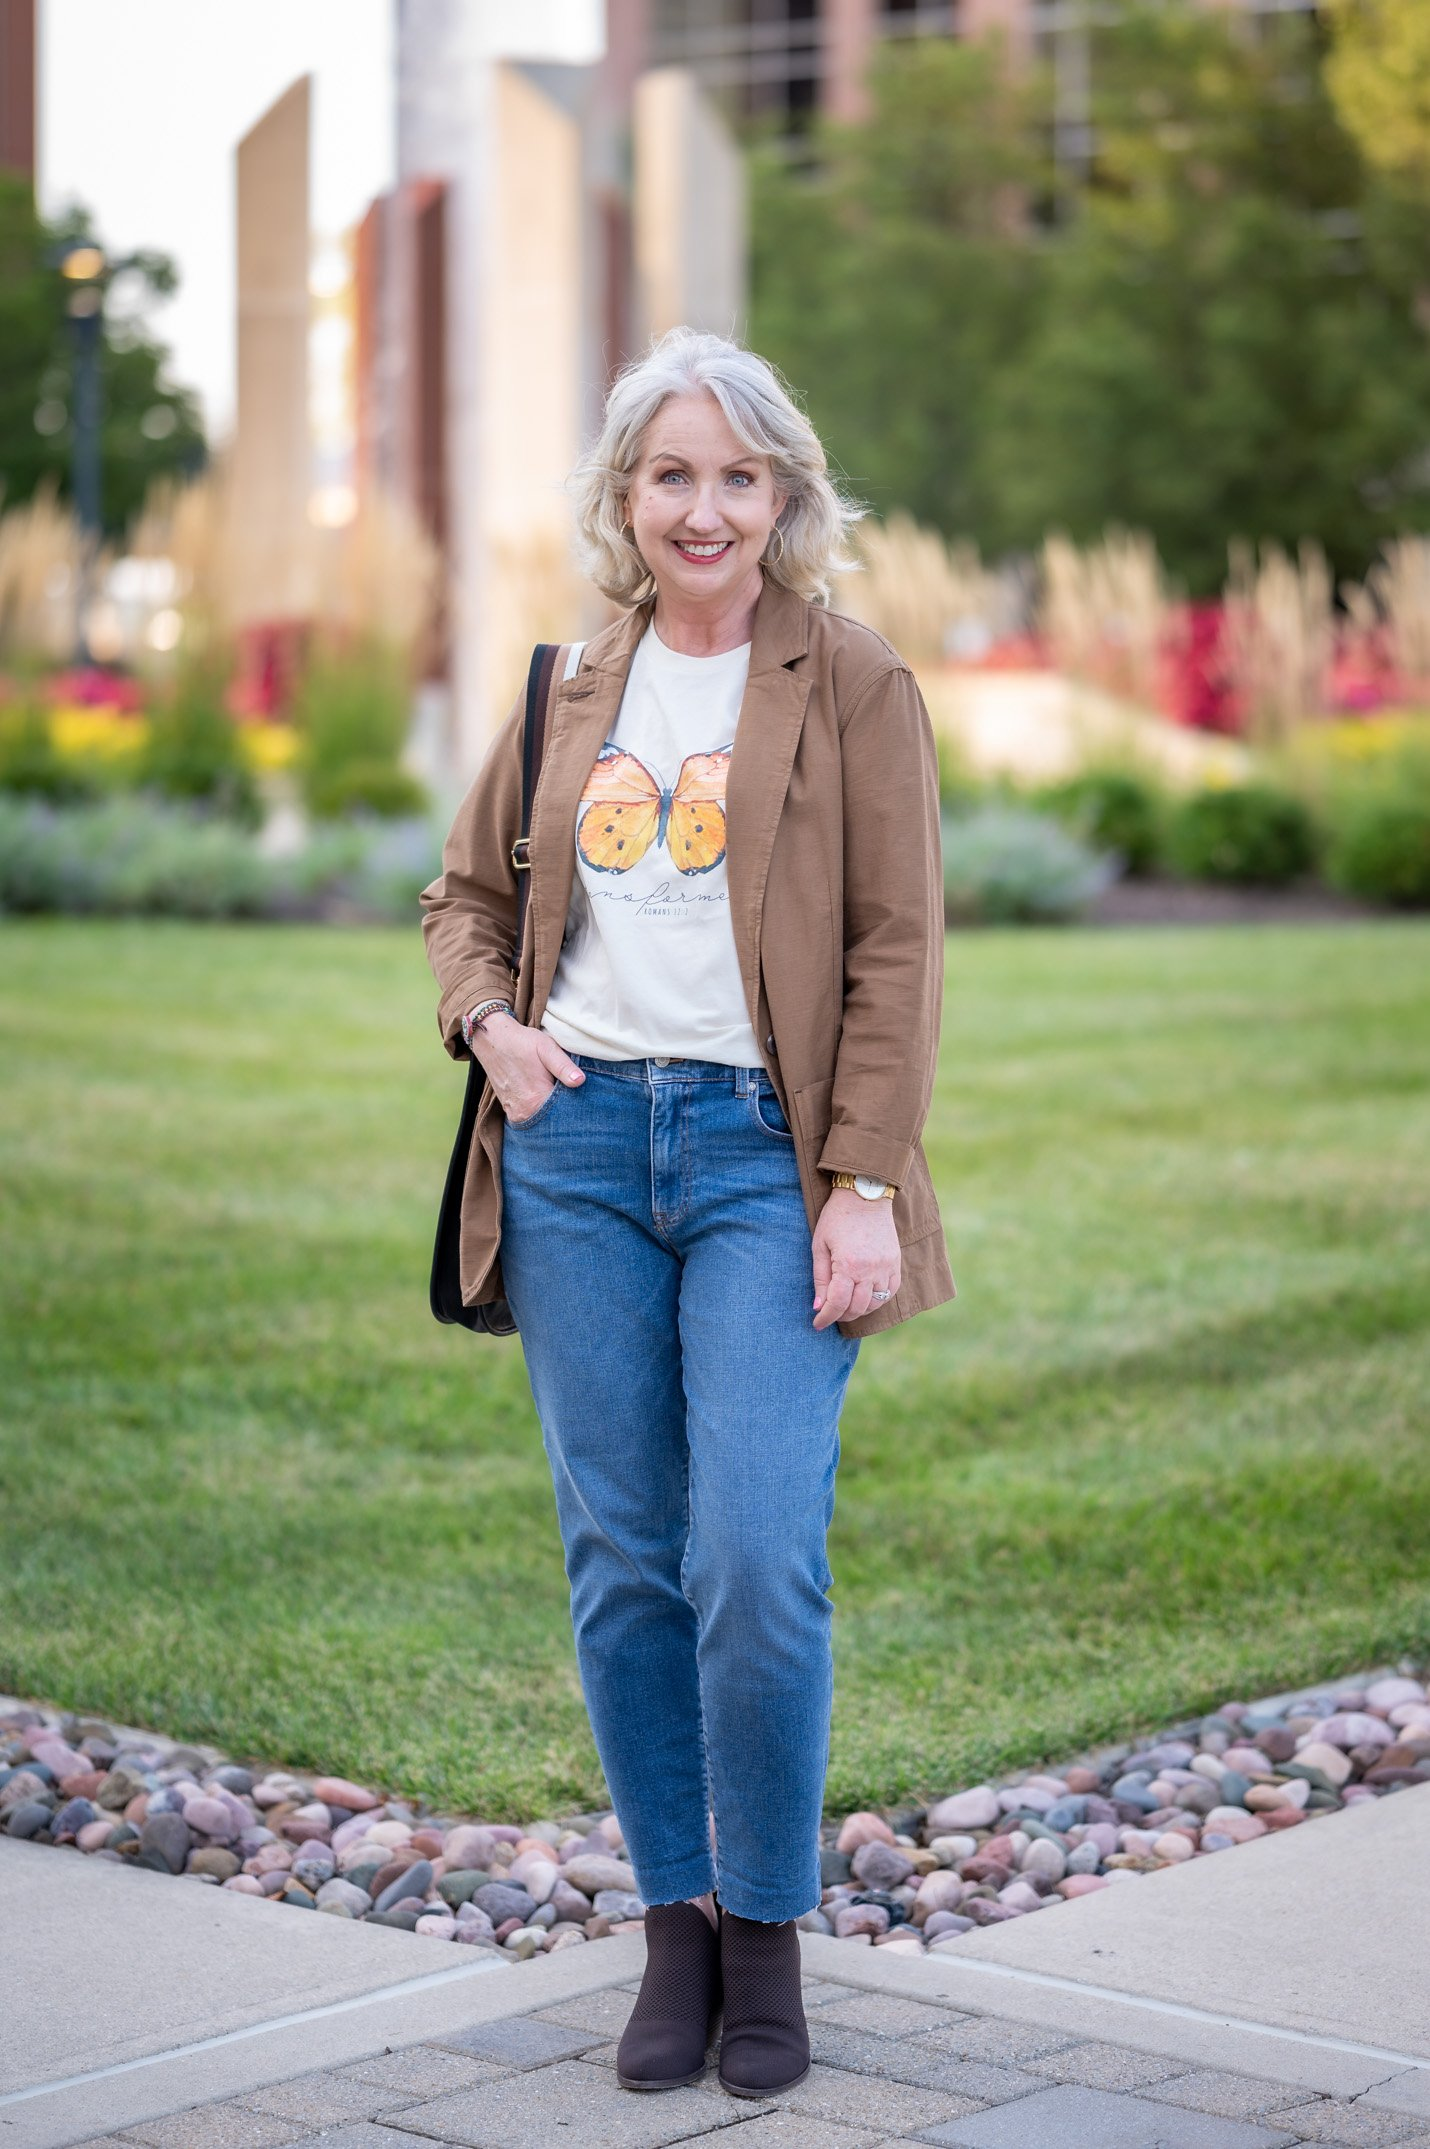 Styling a Graphic Tee with a Casual Blazer